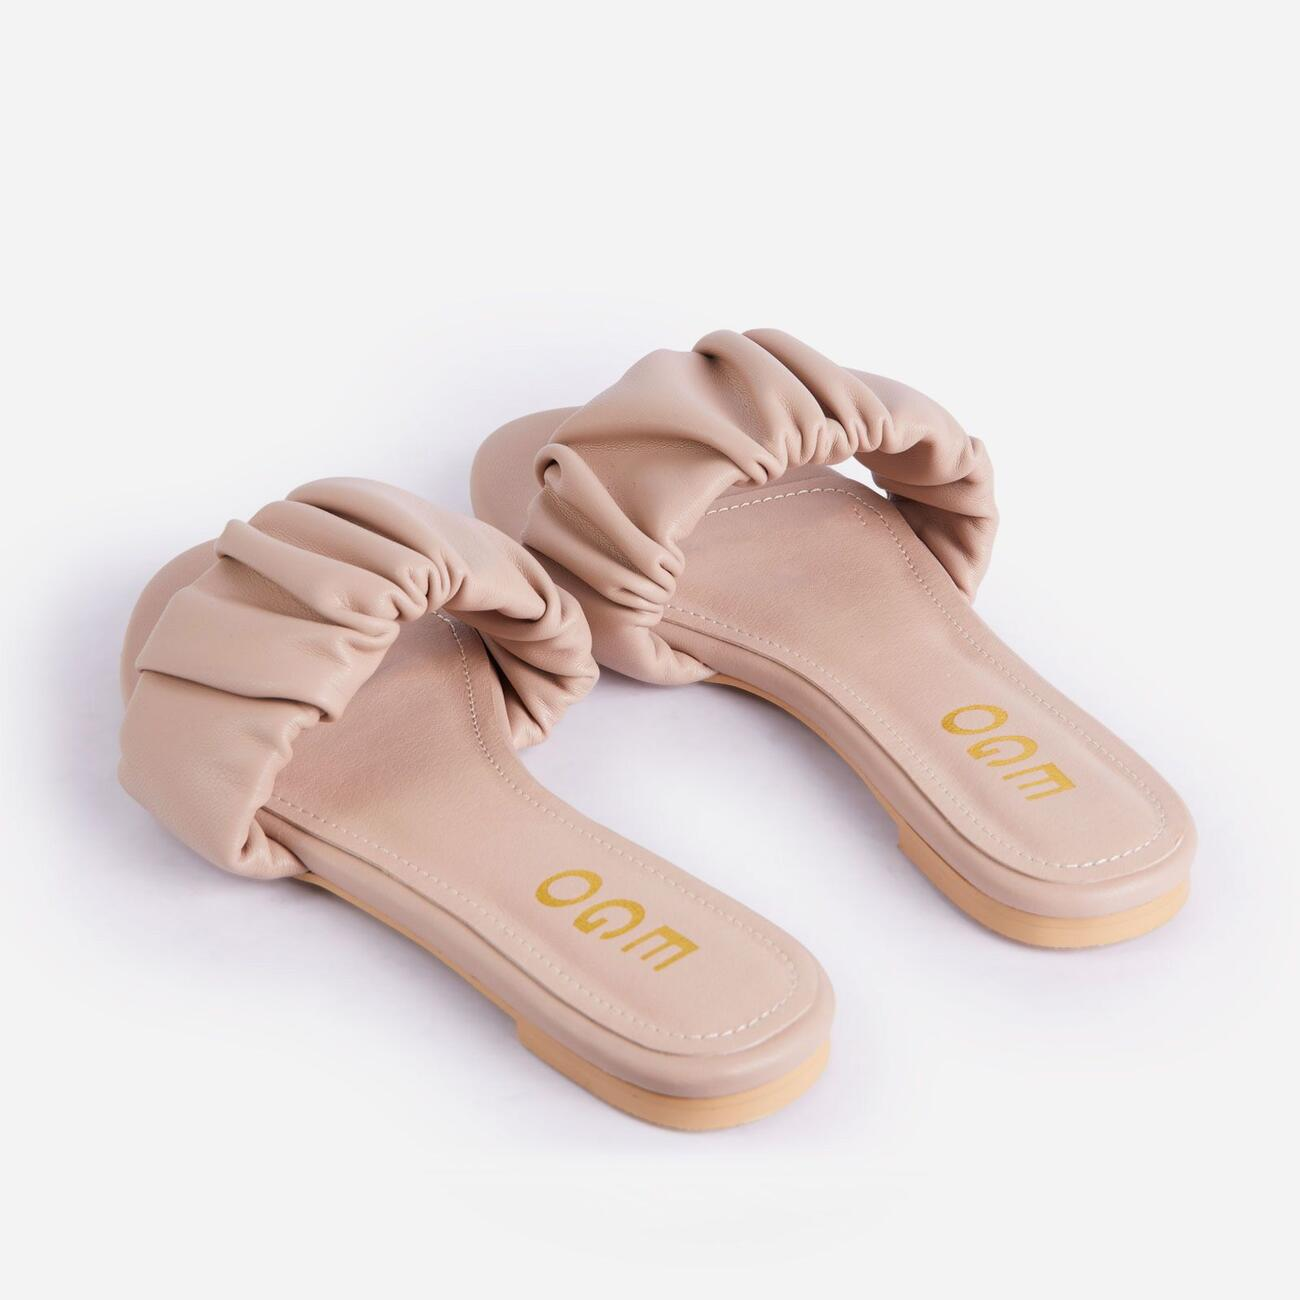 Tender Ruched Flat Slider Sandal In Nude Faux Leather Image 3